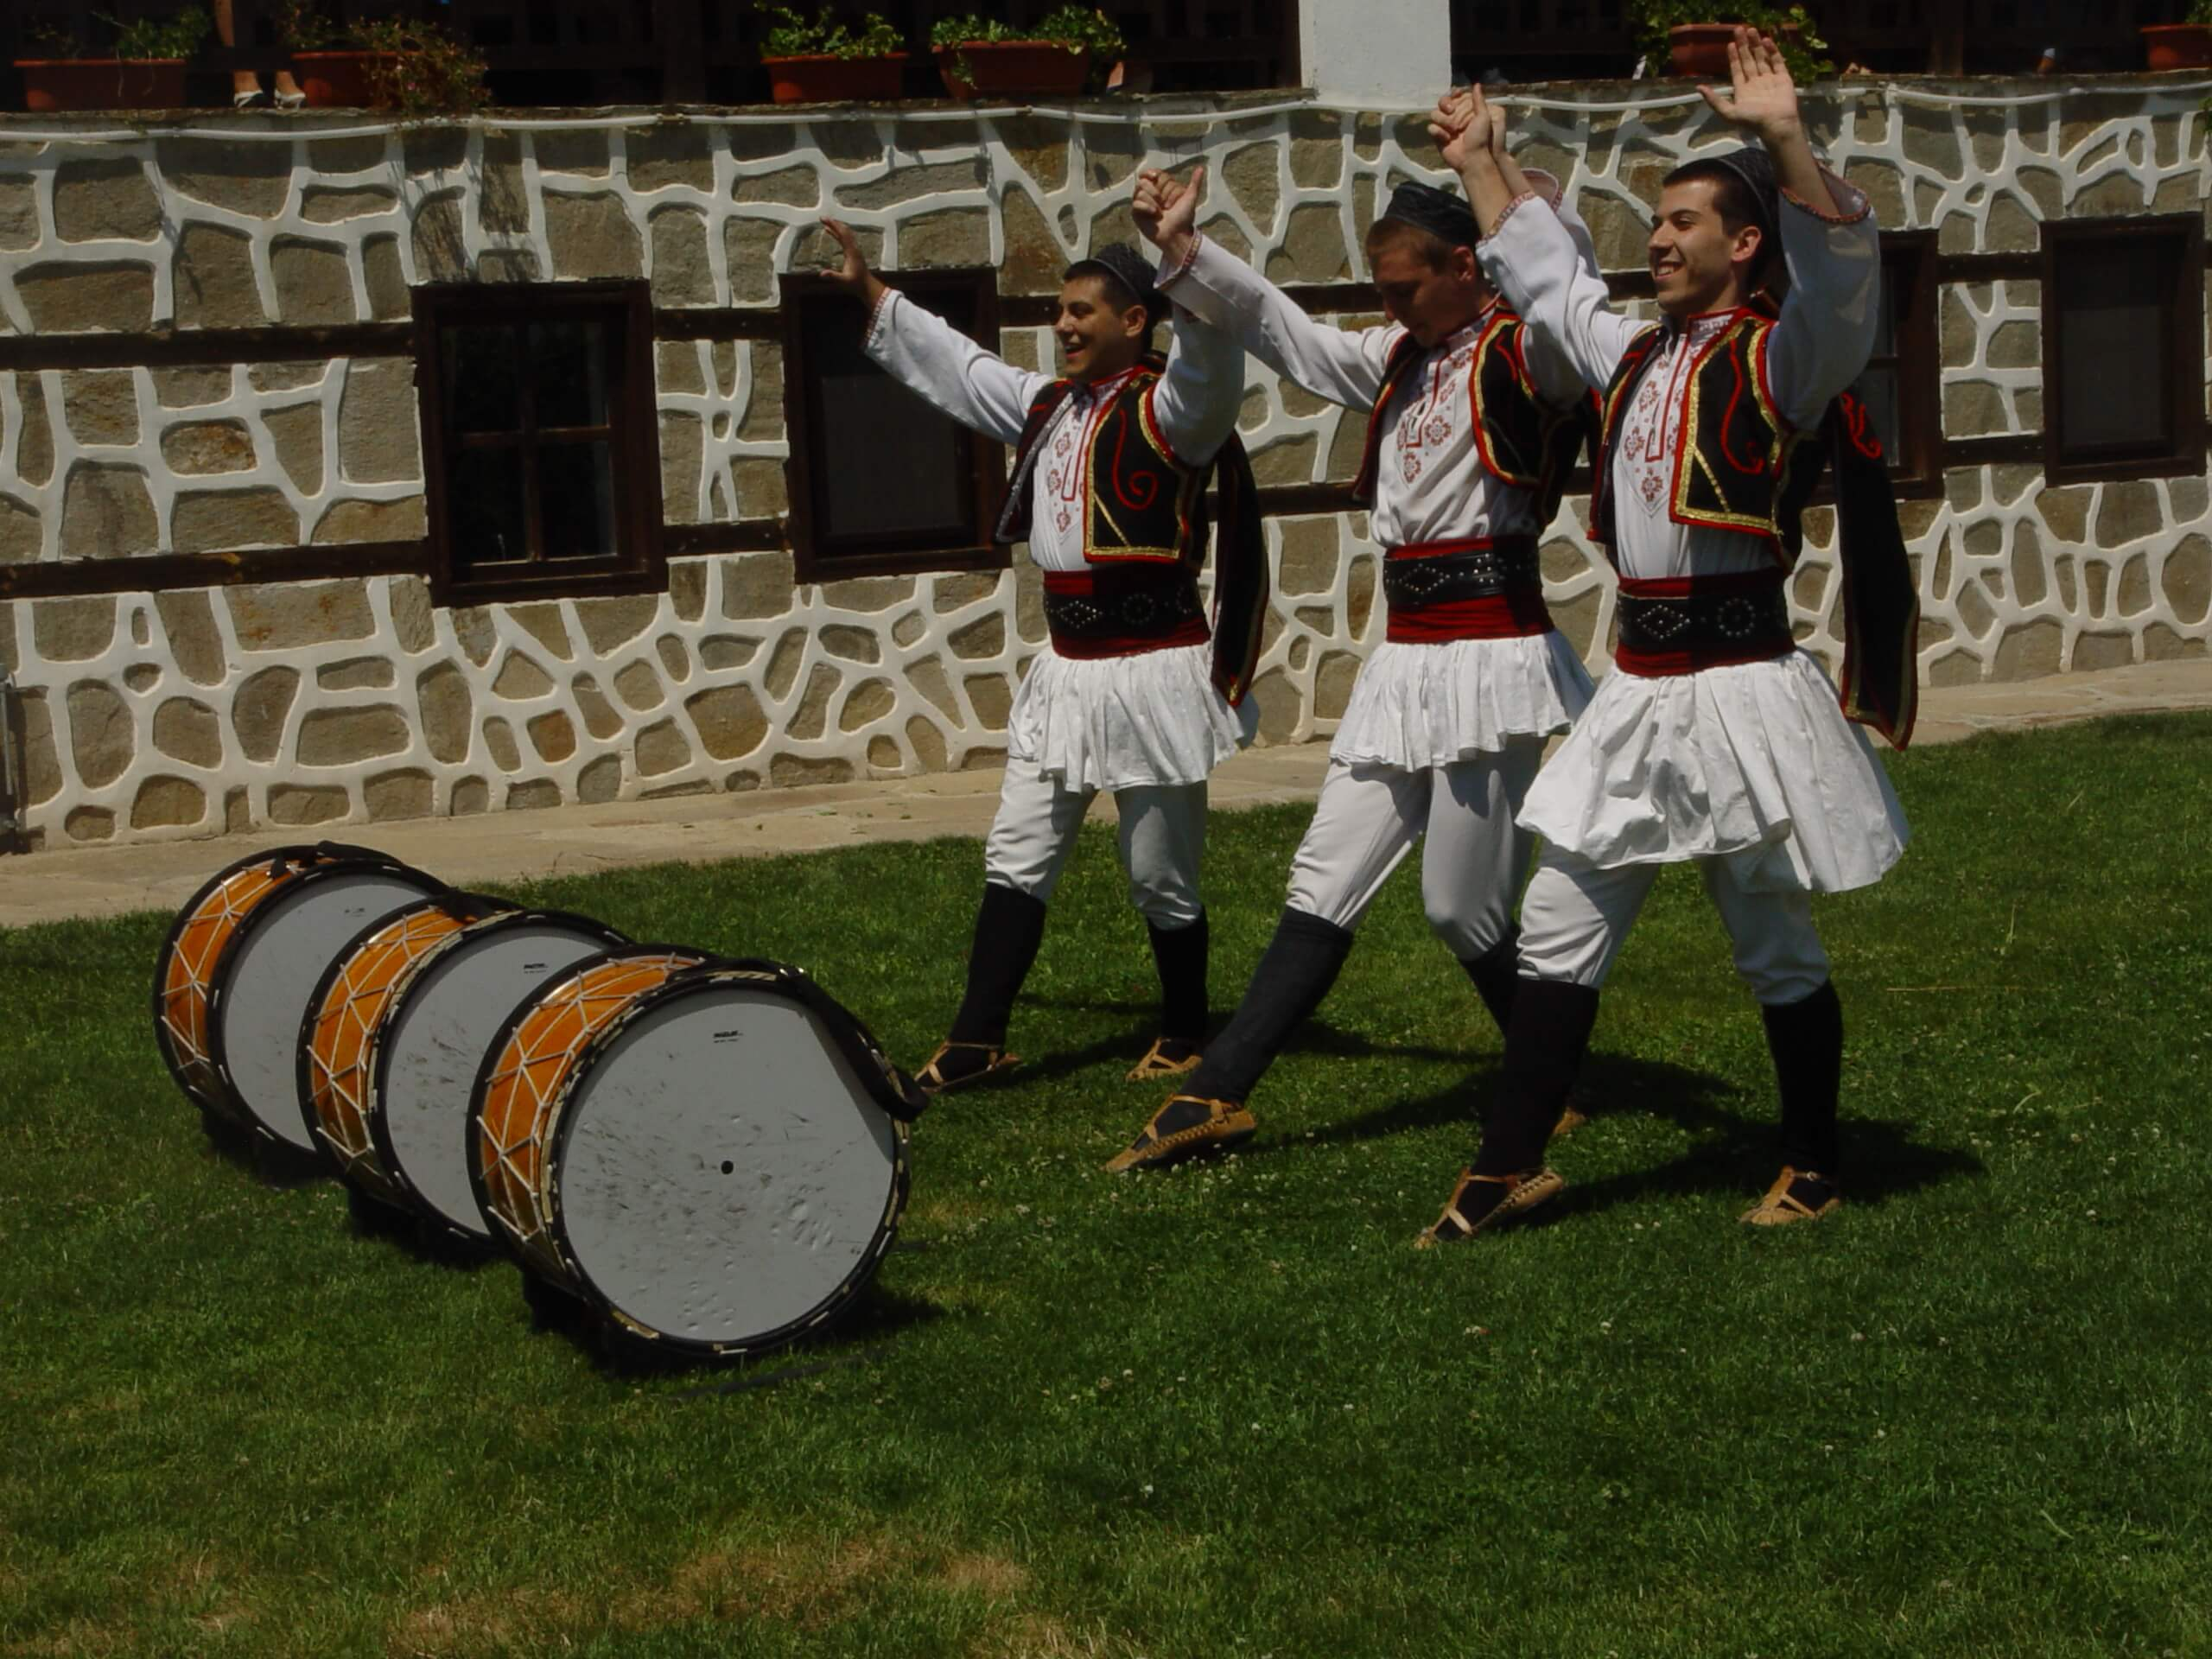 History and culture of Bulgaria - traditional folklore dance